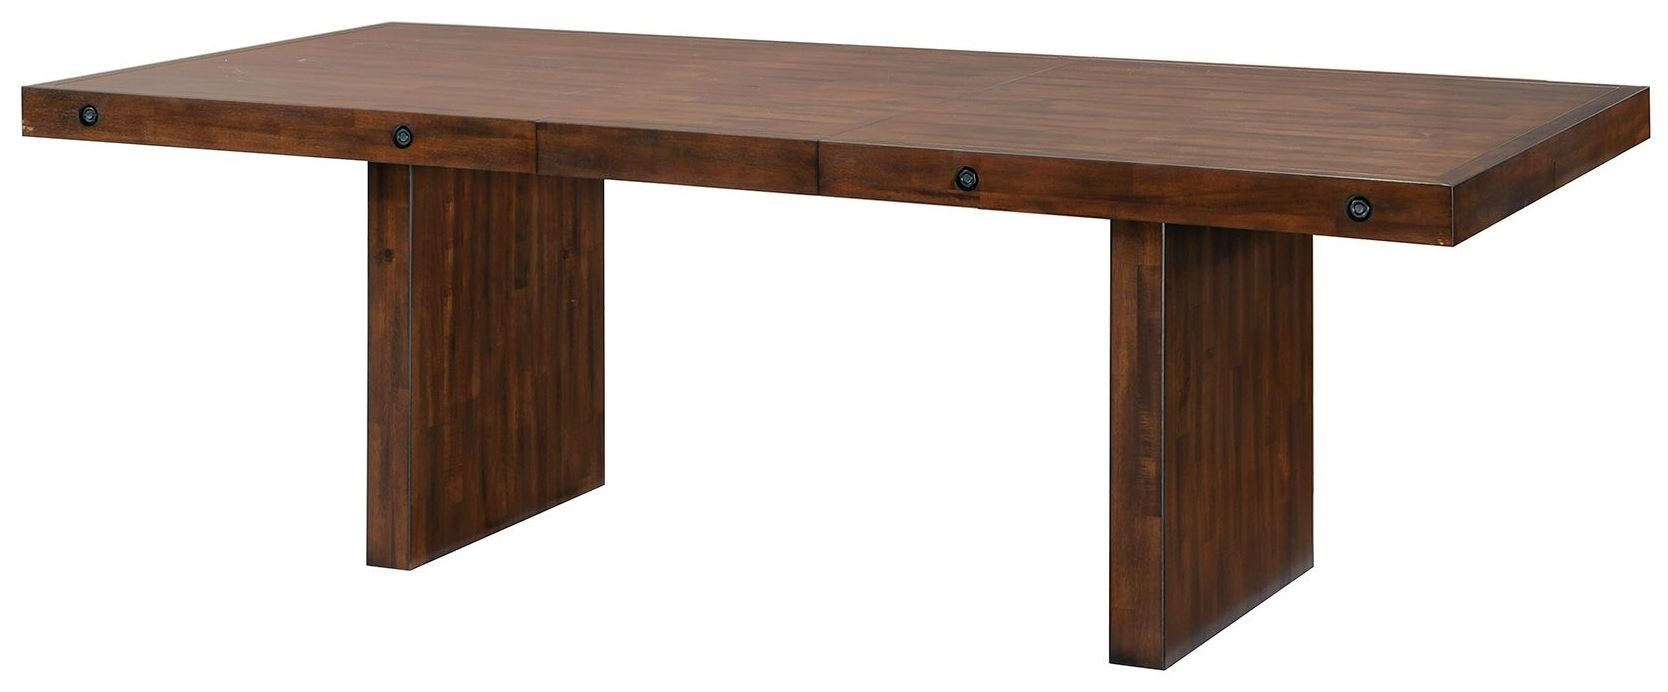 Montague Rustic Brown Extendable Rectangular Dining Table  : 105981 c from colemanfurniture.com size 1668 x 692 jpeg 84kB